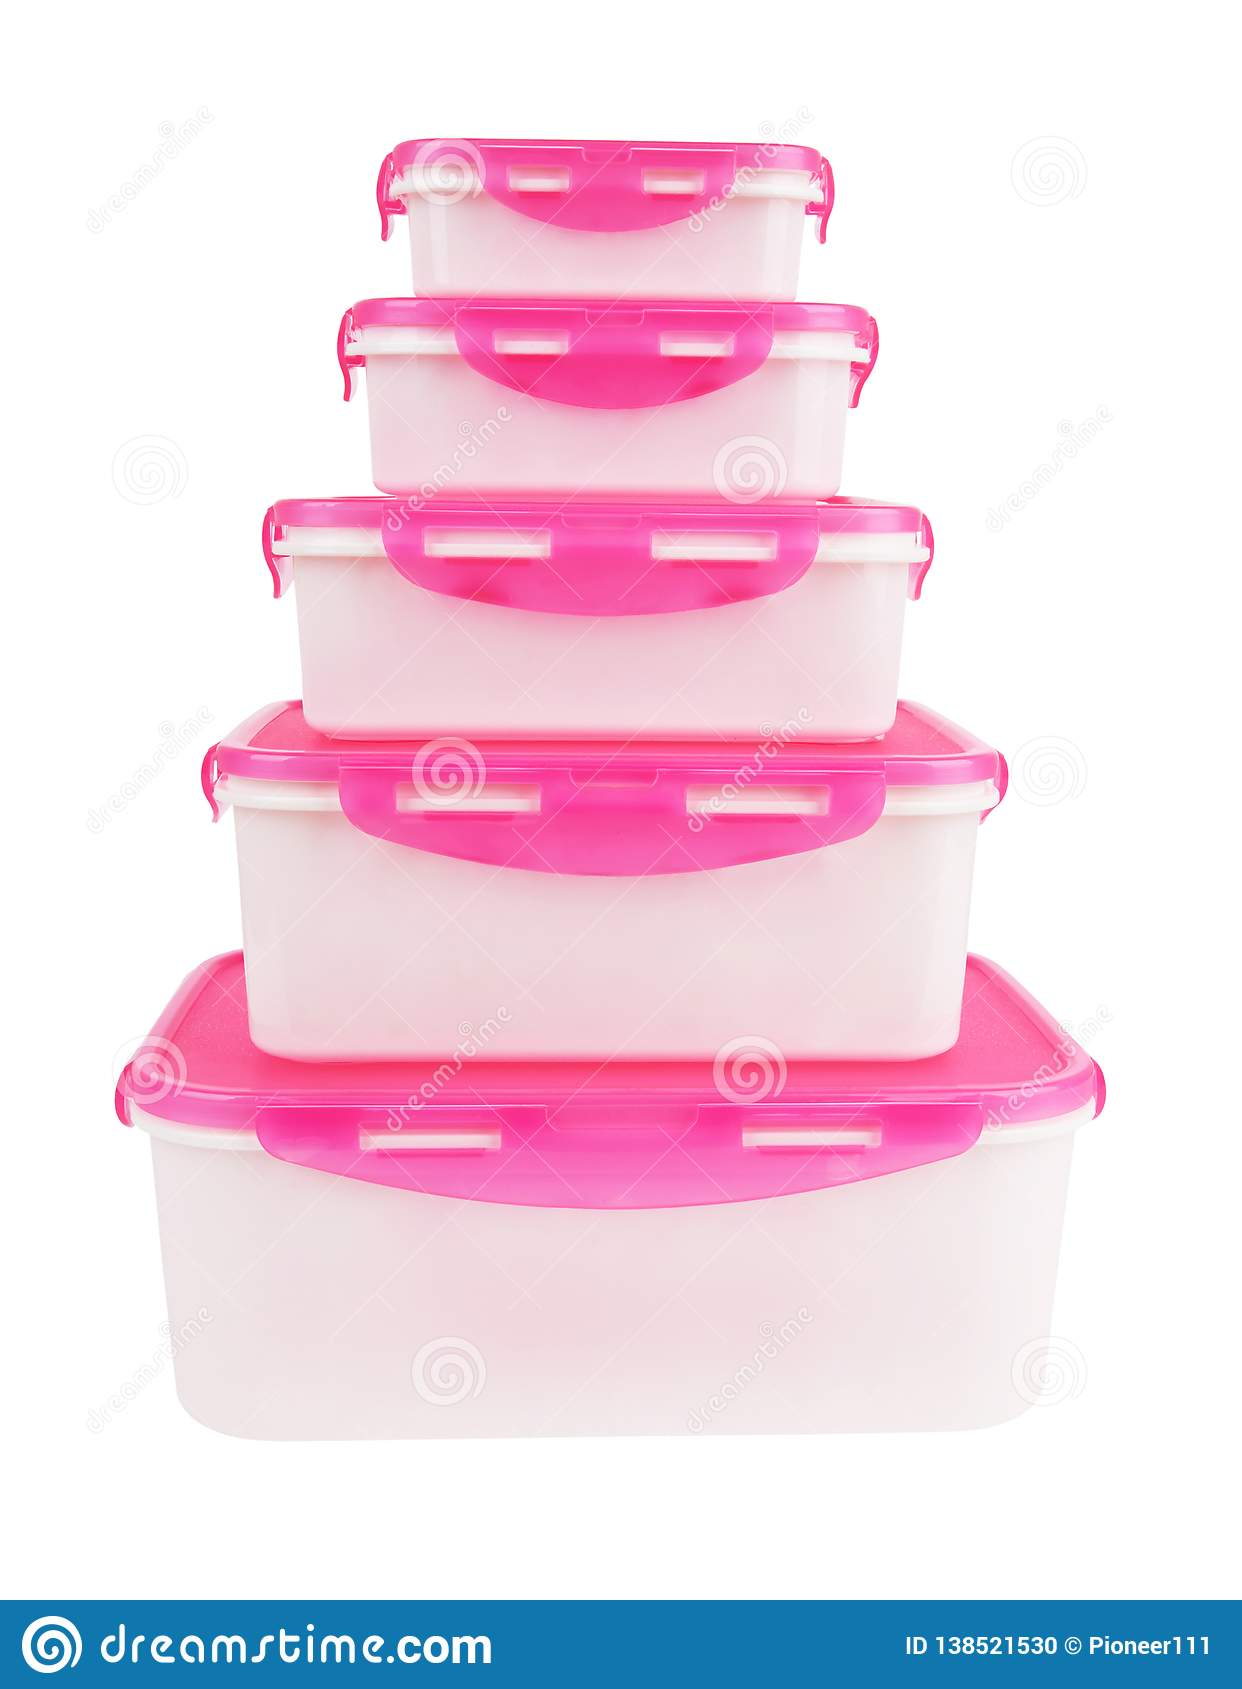 Plastic boxes isolated